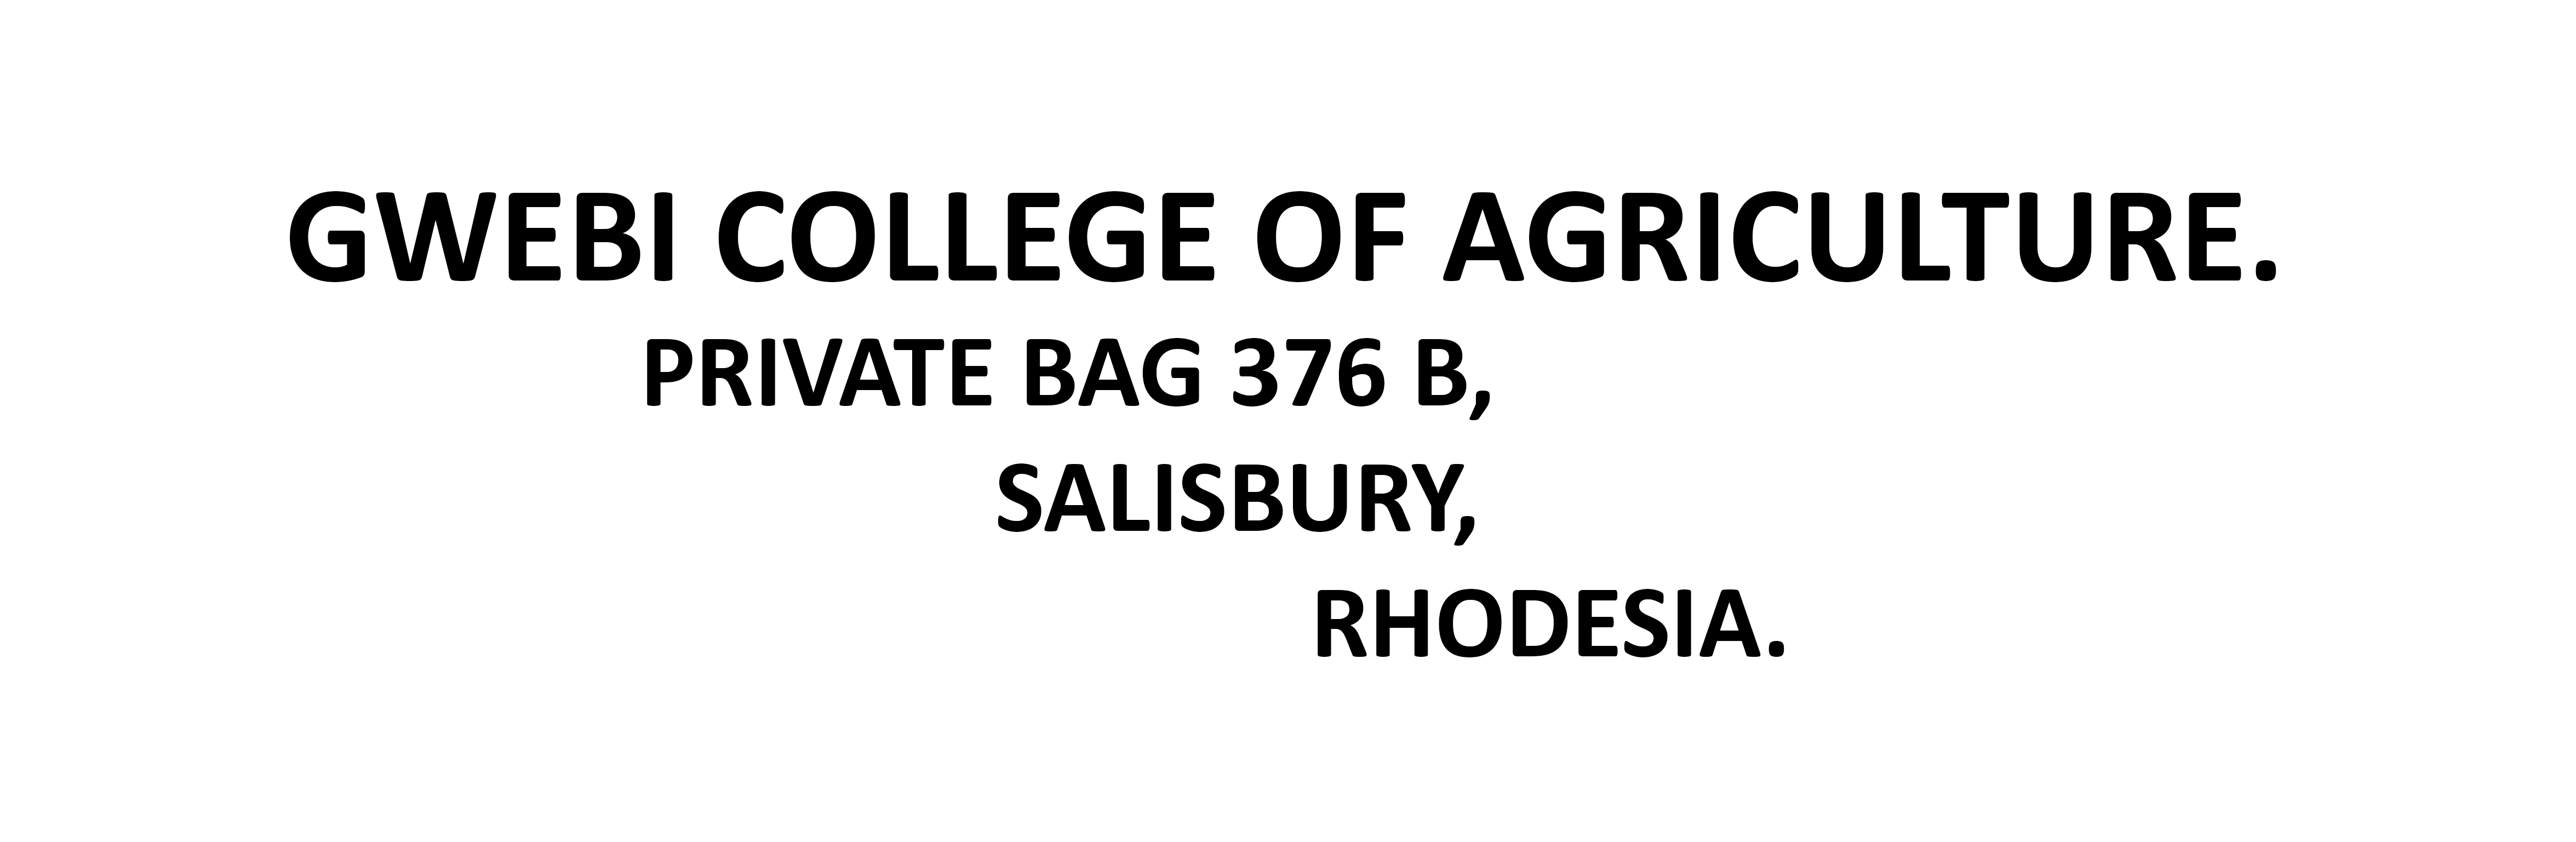 Gwebi College of Agriculture address